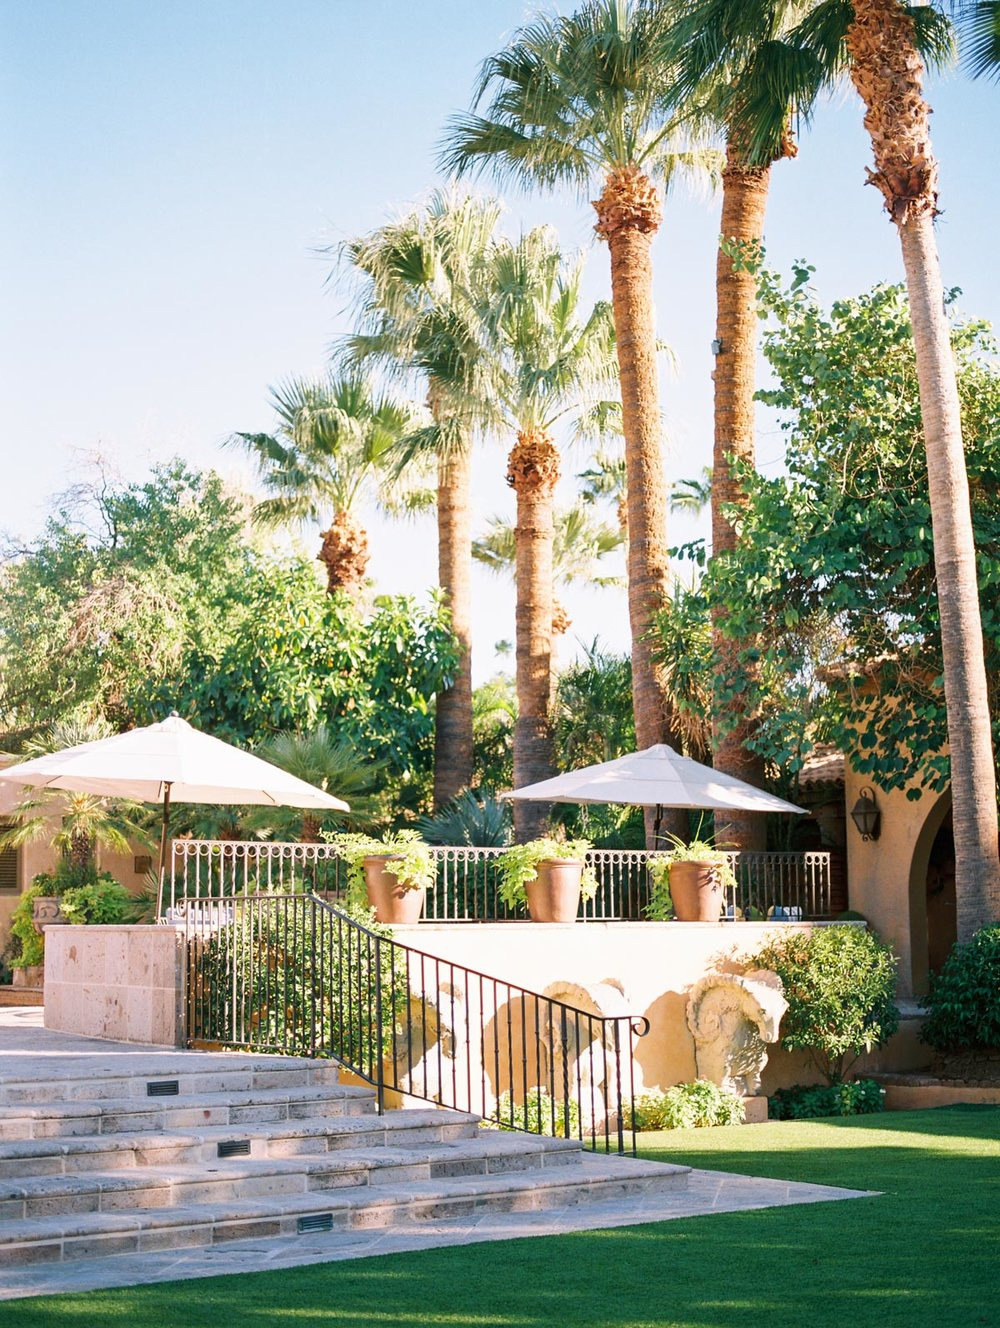 royal-palms-resort-2.jpg